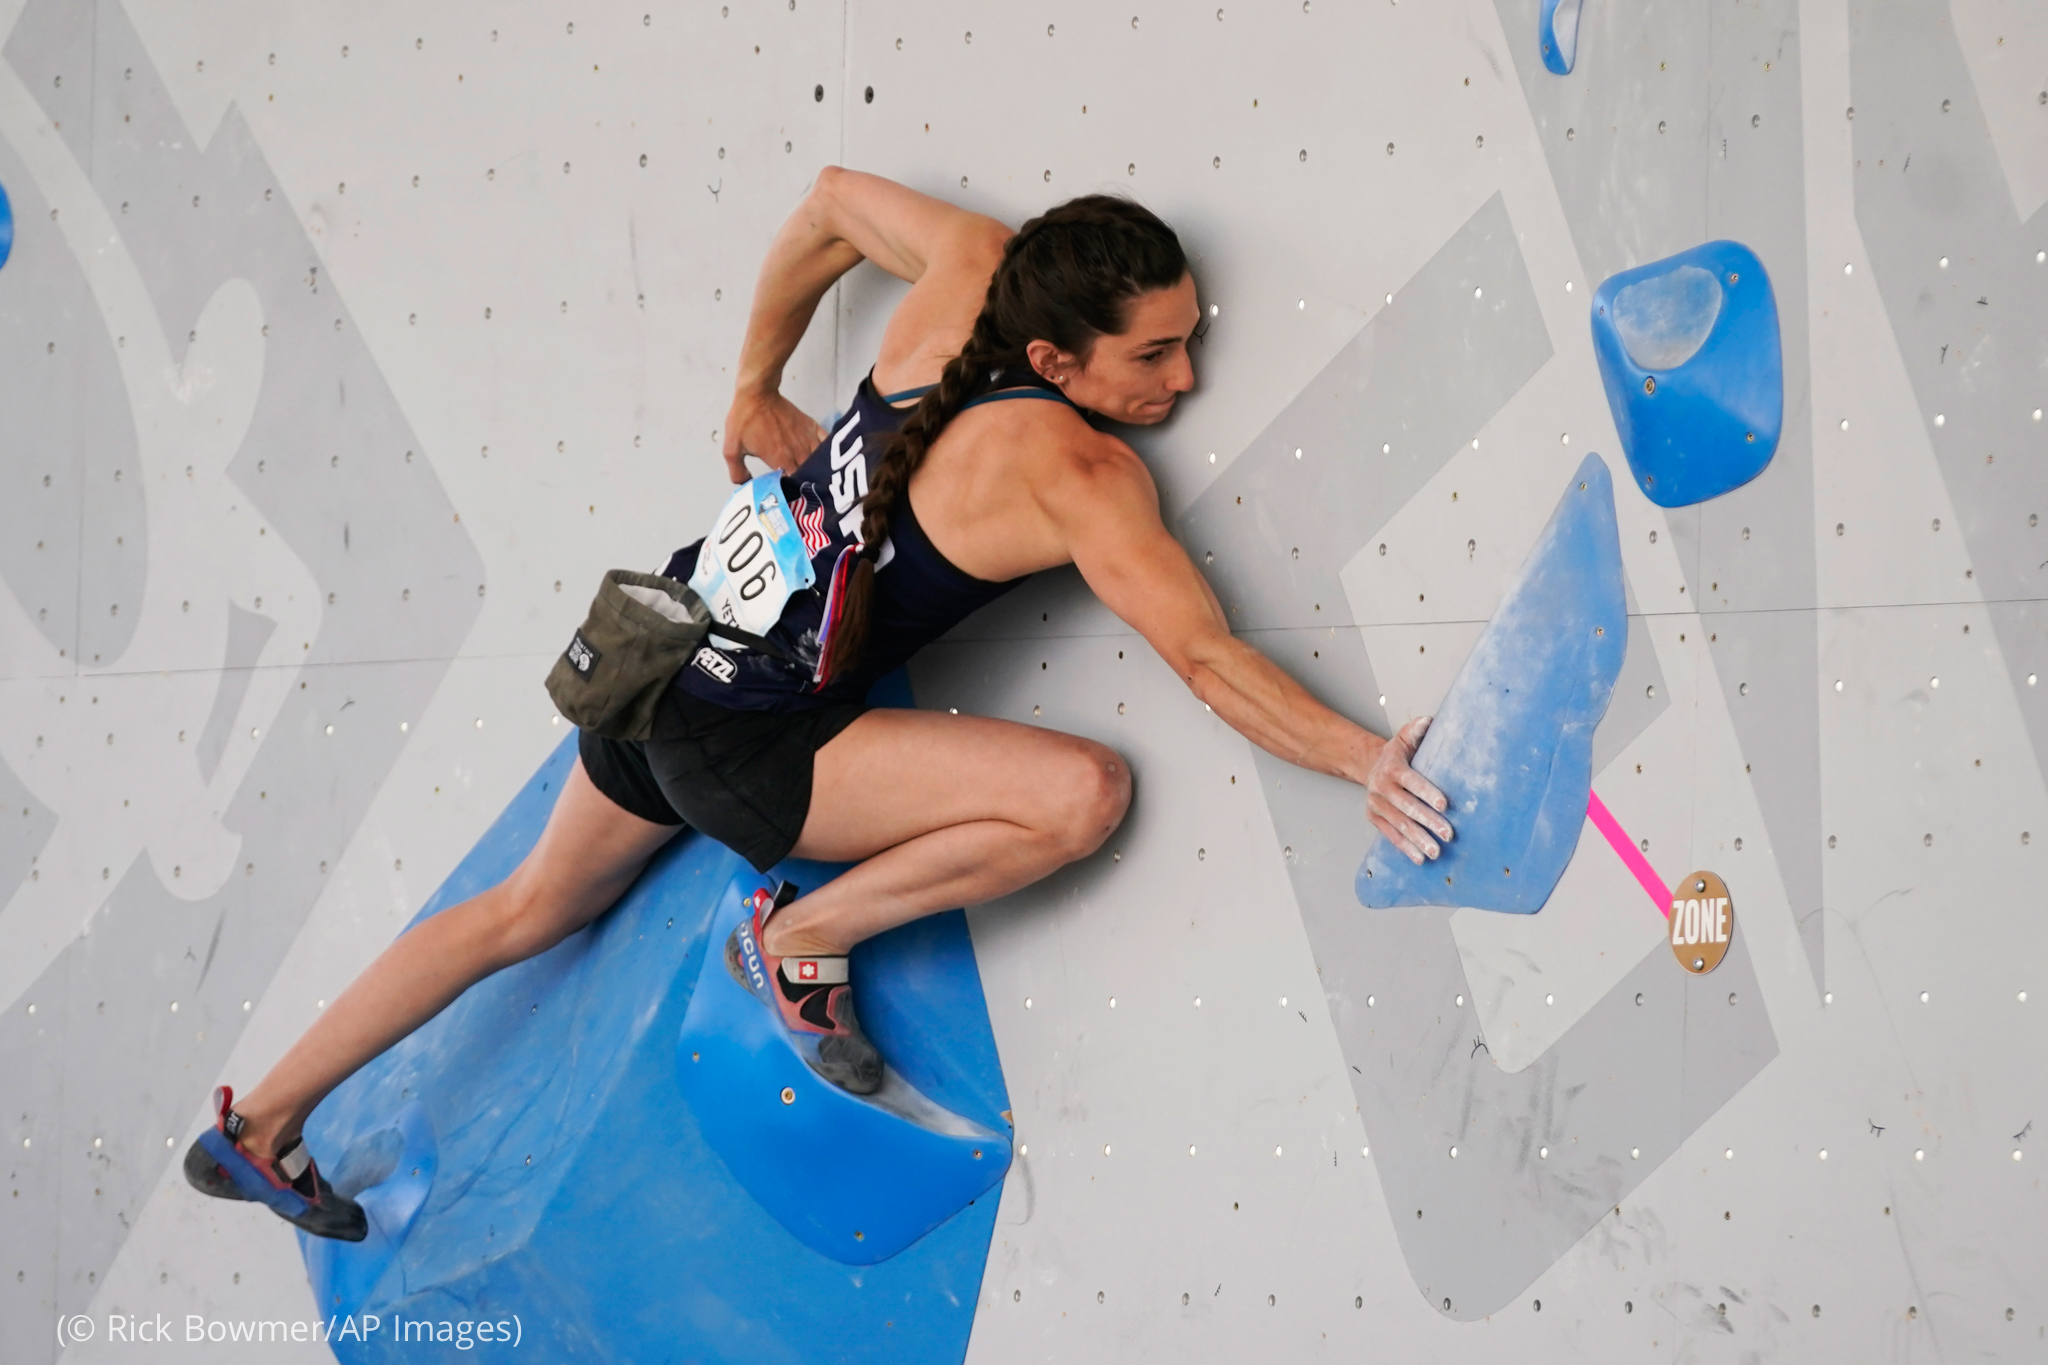 Woman reaches for hold on climbing wall (© Rick Bowmer/AP Images)